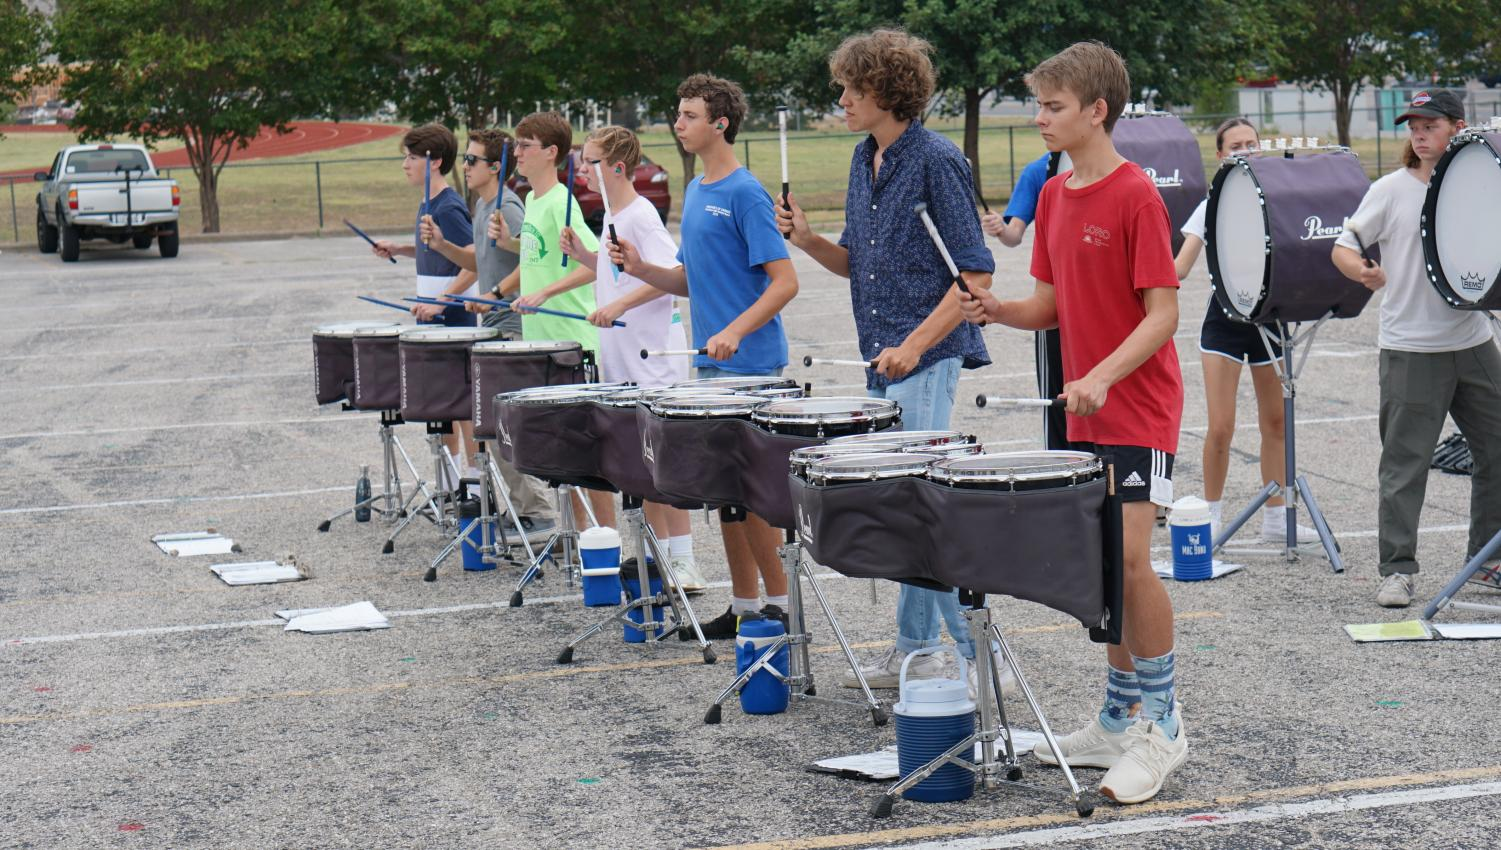 The drum line rehearsed with the rest of the percussion section for the upcoming Dripping Springs Percussion contest on Sept. 21.